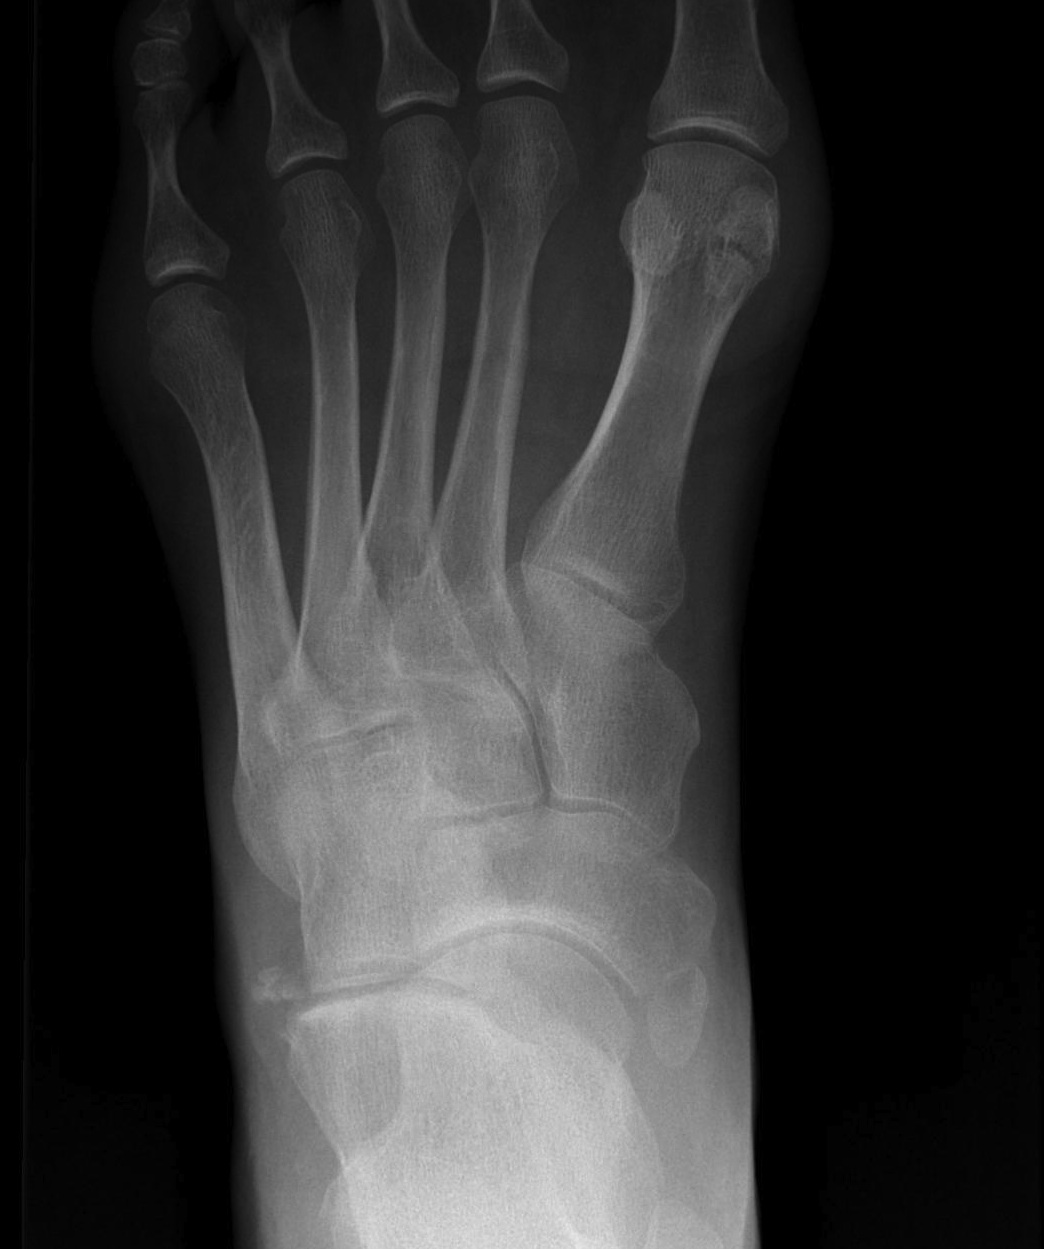 Accessory Navicular The Bone School Variants of number include partite bones, supernumerary bones, and absence of bones. the bone school